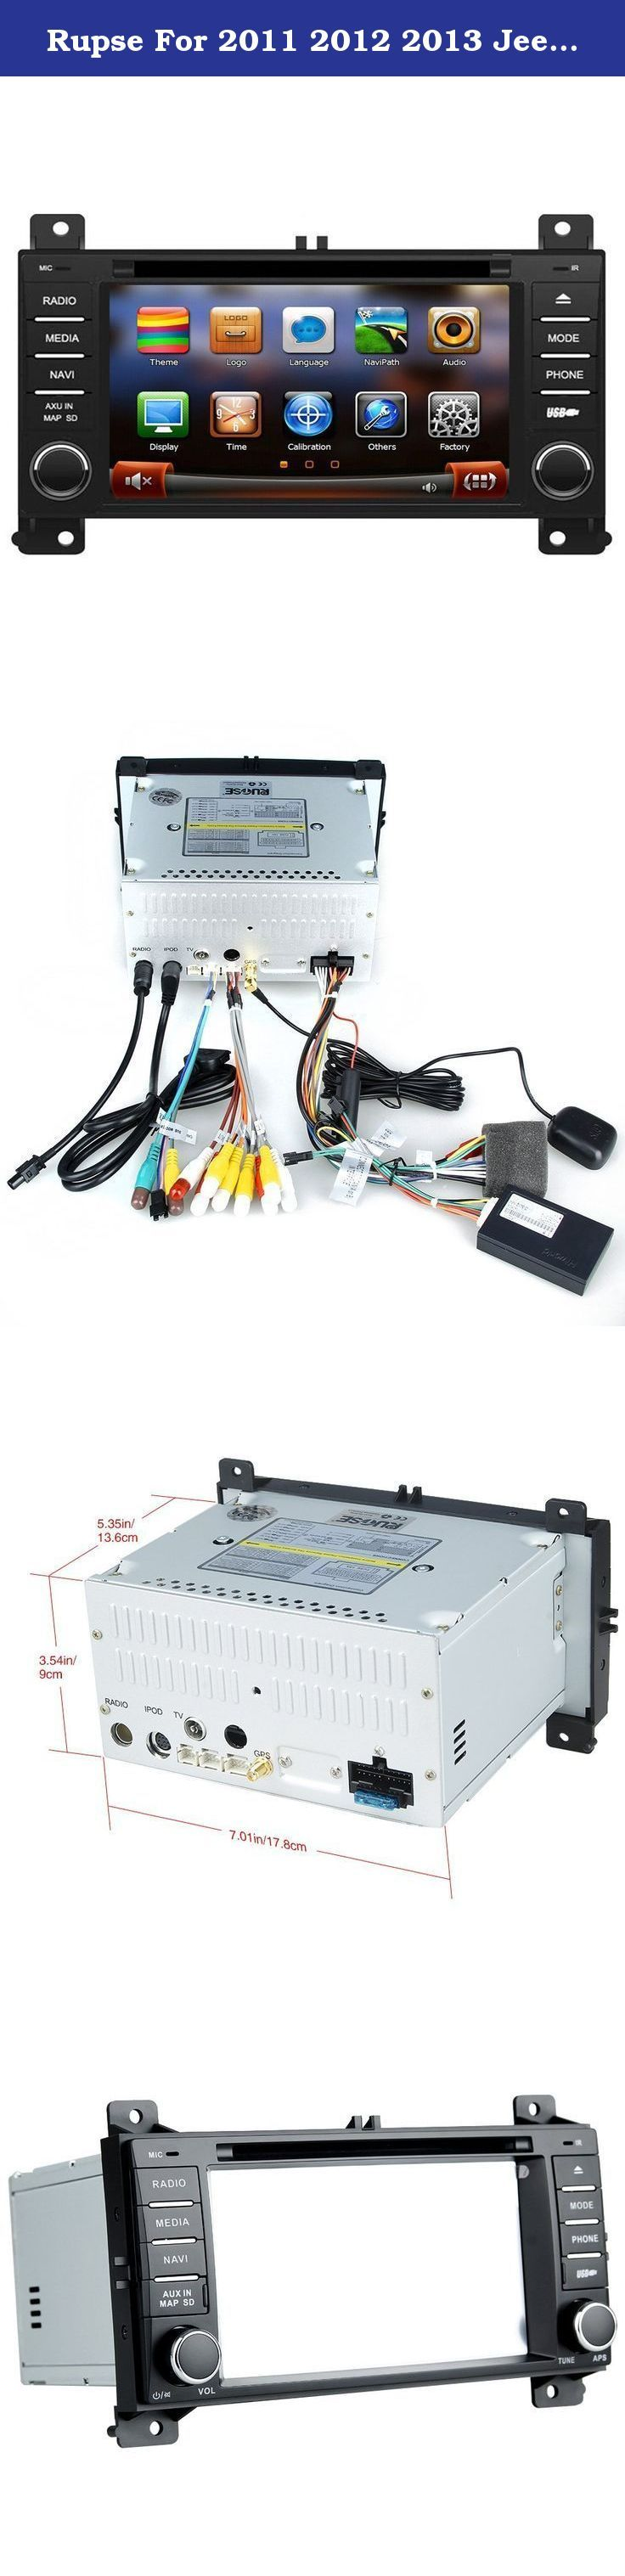 "Rupse For 2011 2012 2013 Jeep Grand Cherokee Car DVD DVD Player With BT/Ipop/SD/Handsfree Navigation System (OEM Factory Style,Free Maps). Key Features: This Car Multimedia system fits:2011 2012 2013 Jeep Grand Cherokee 5.5"" Digital High Definition 800*480 Touchscreen Built-in GPS navigation Unique 3D Flash Graphical User Interface Radio: AM FM, Support RDS (30 Preset Stations,18FM/12AM) Background picture customizable With hand free Bluetooth Support iPod Bluetooth phone book and…"